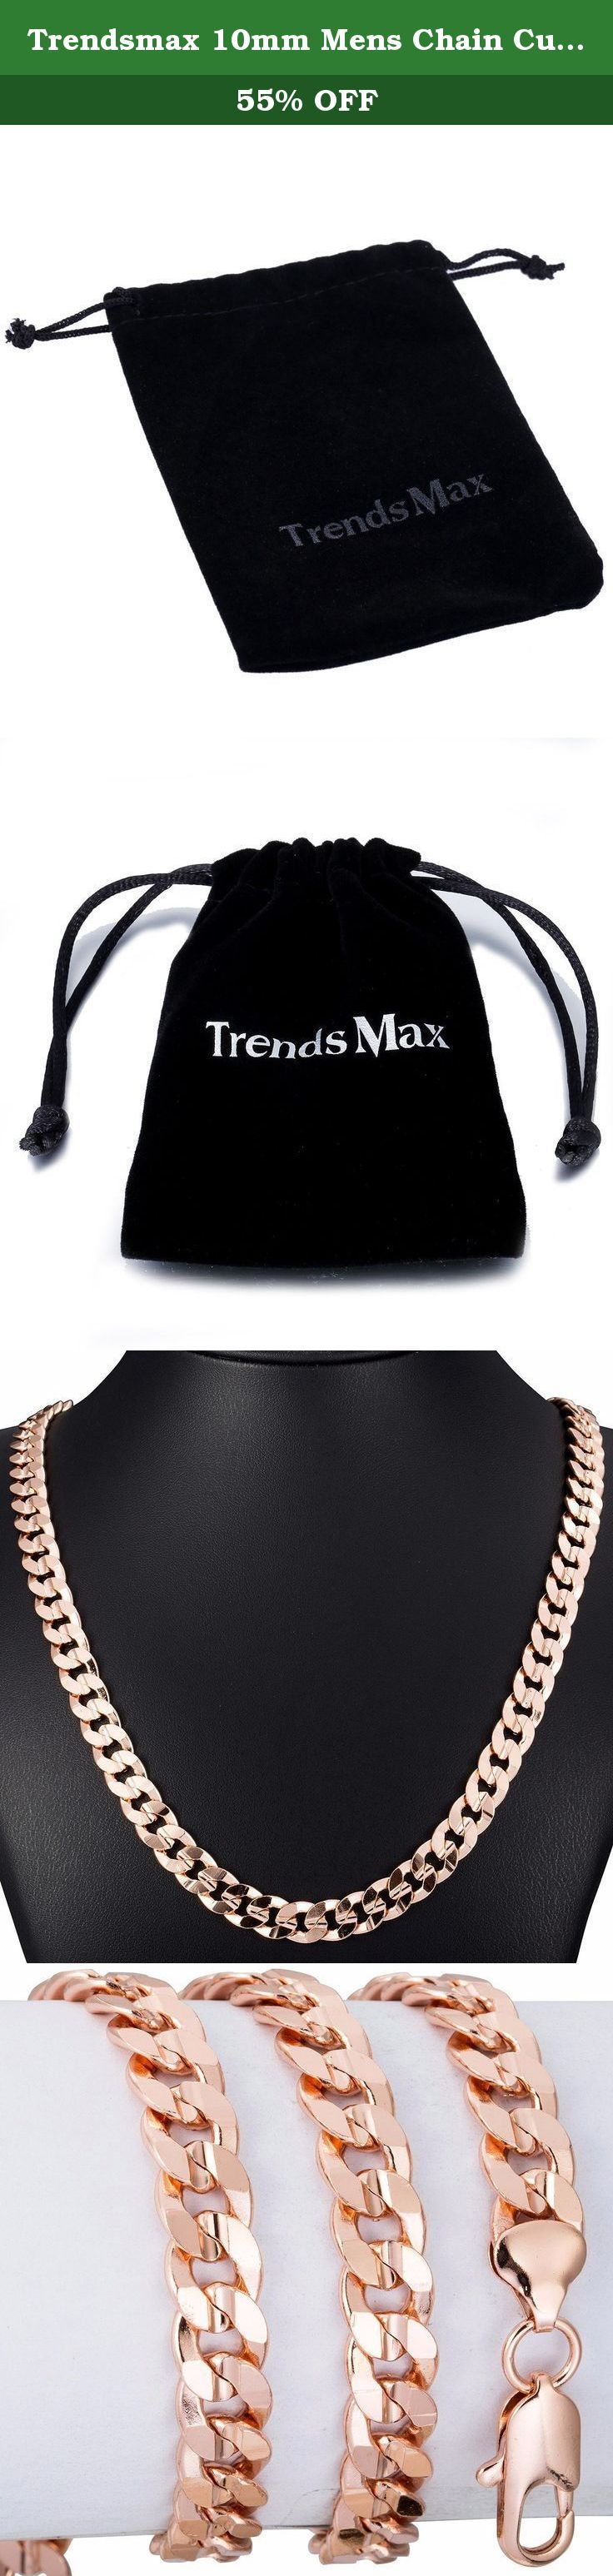 Trendsmax 10mm Mens Chain Curb Cuban Link Rose Gold Plated Necklace w Lobster Clasp 36inch. Fashion Design Trendsmax Jewelry 10mm Wide Mens Chain Curb Cuban Rose Gold Plated Necklace w Lobster Clasp. Available in 18-36 inch. Daily wear, It¡¯s perfect gift for Birthday, Anniversary, Christmas.